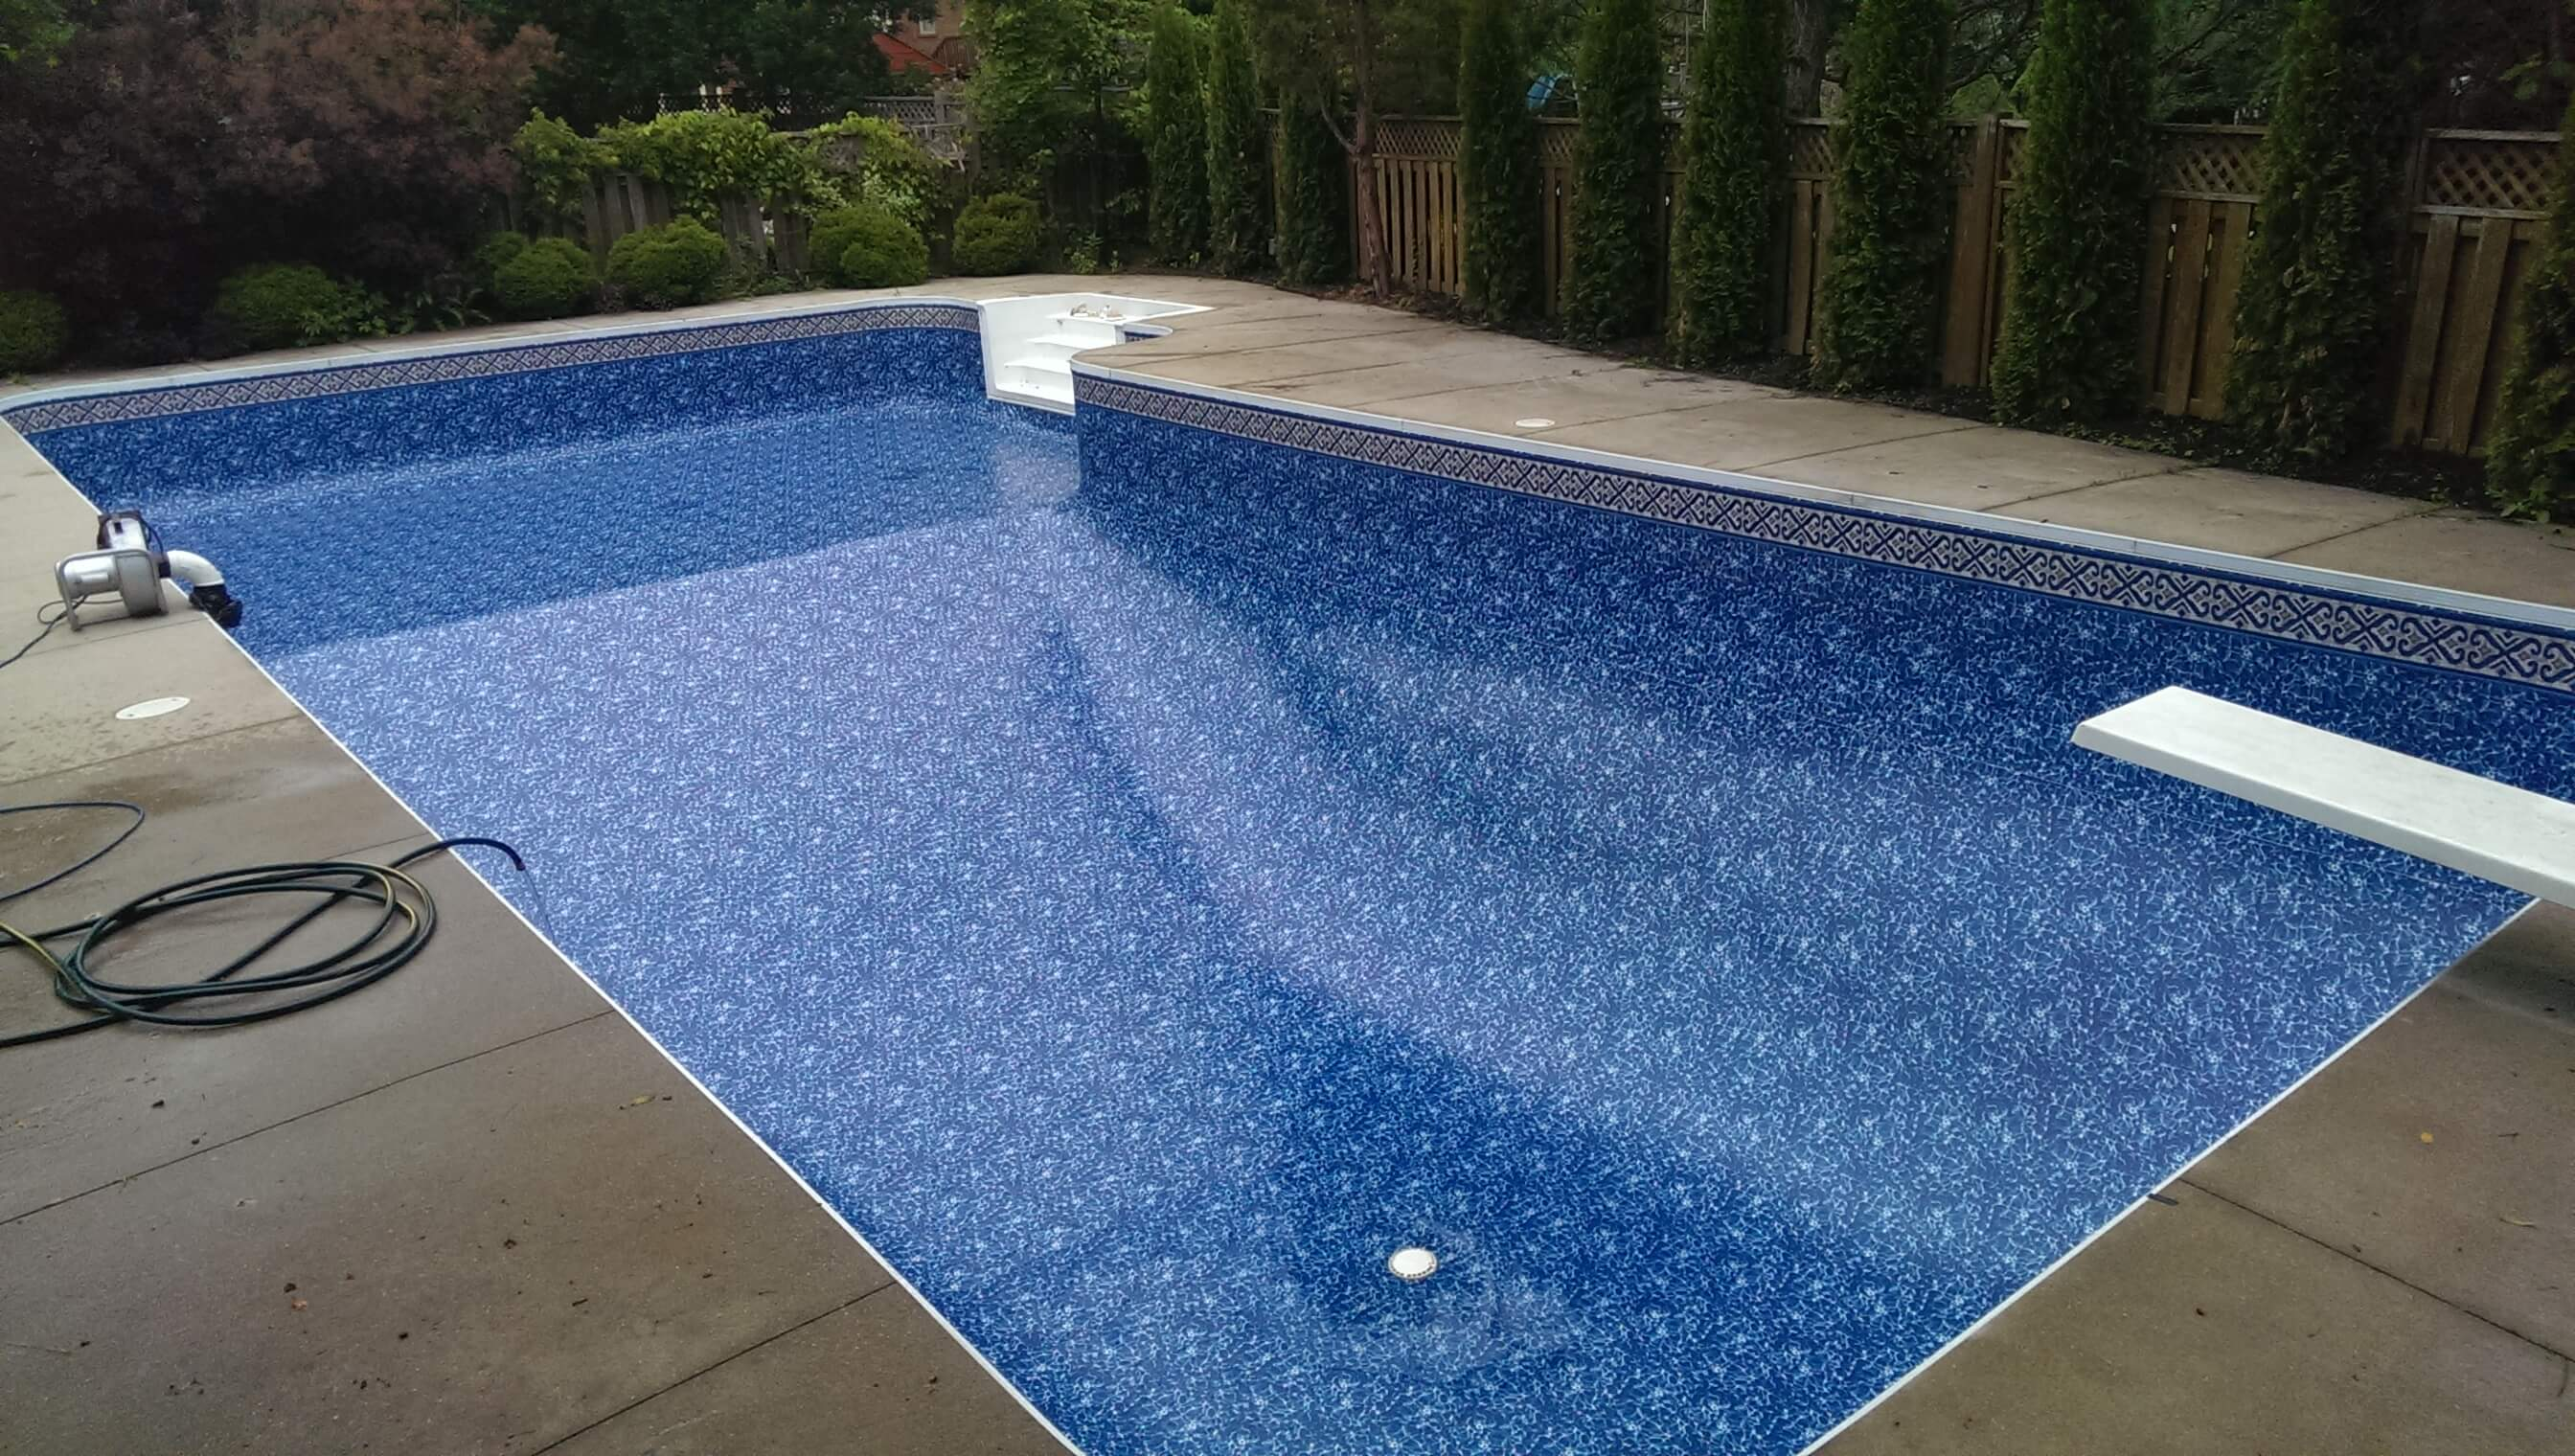 Swimming pool liners pickering ajax whitby oshawa for Swimming pool liners